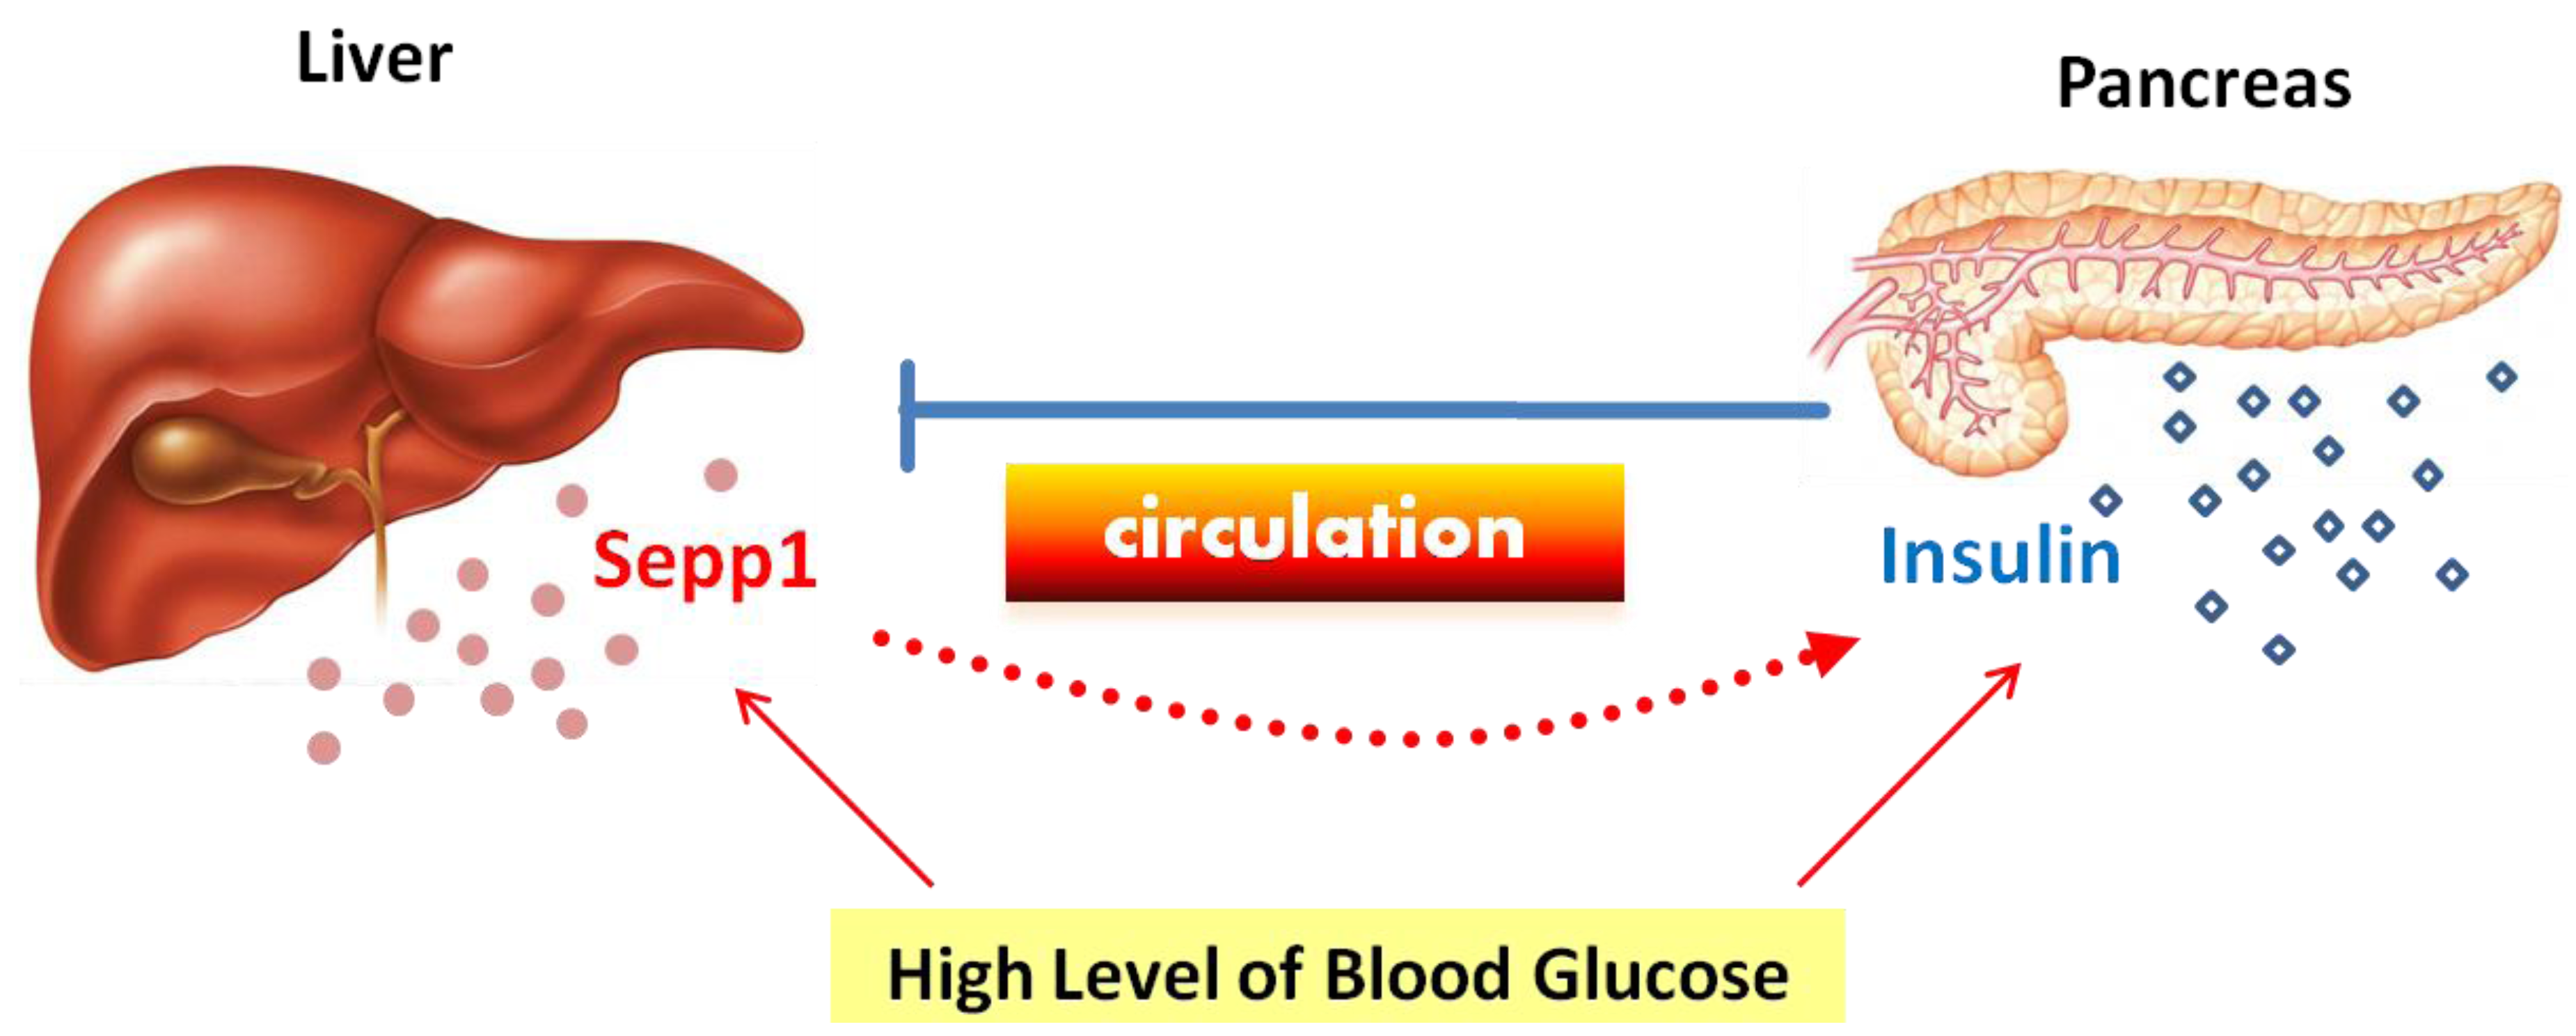 what is the relationship between glucose and